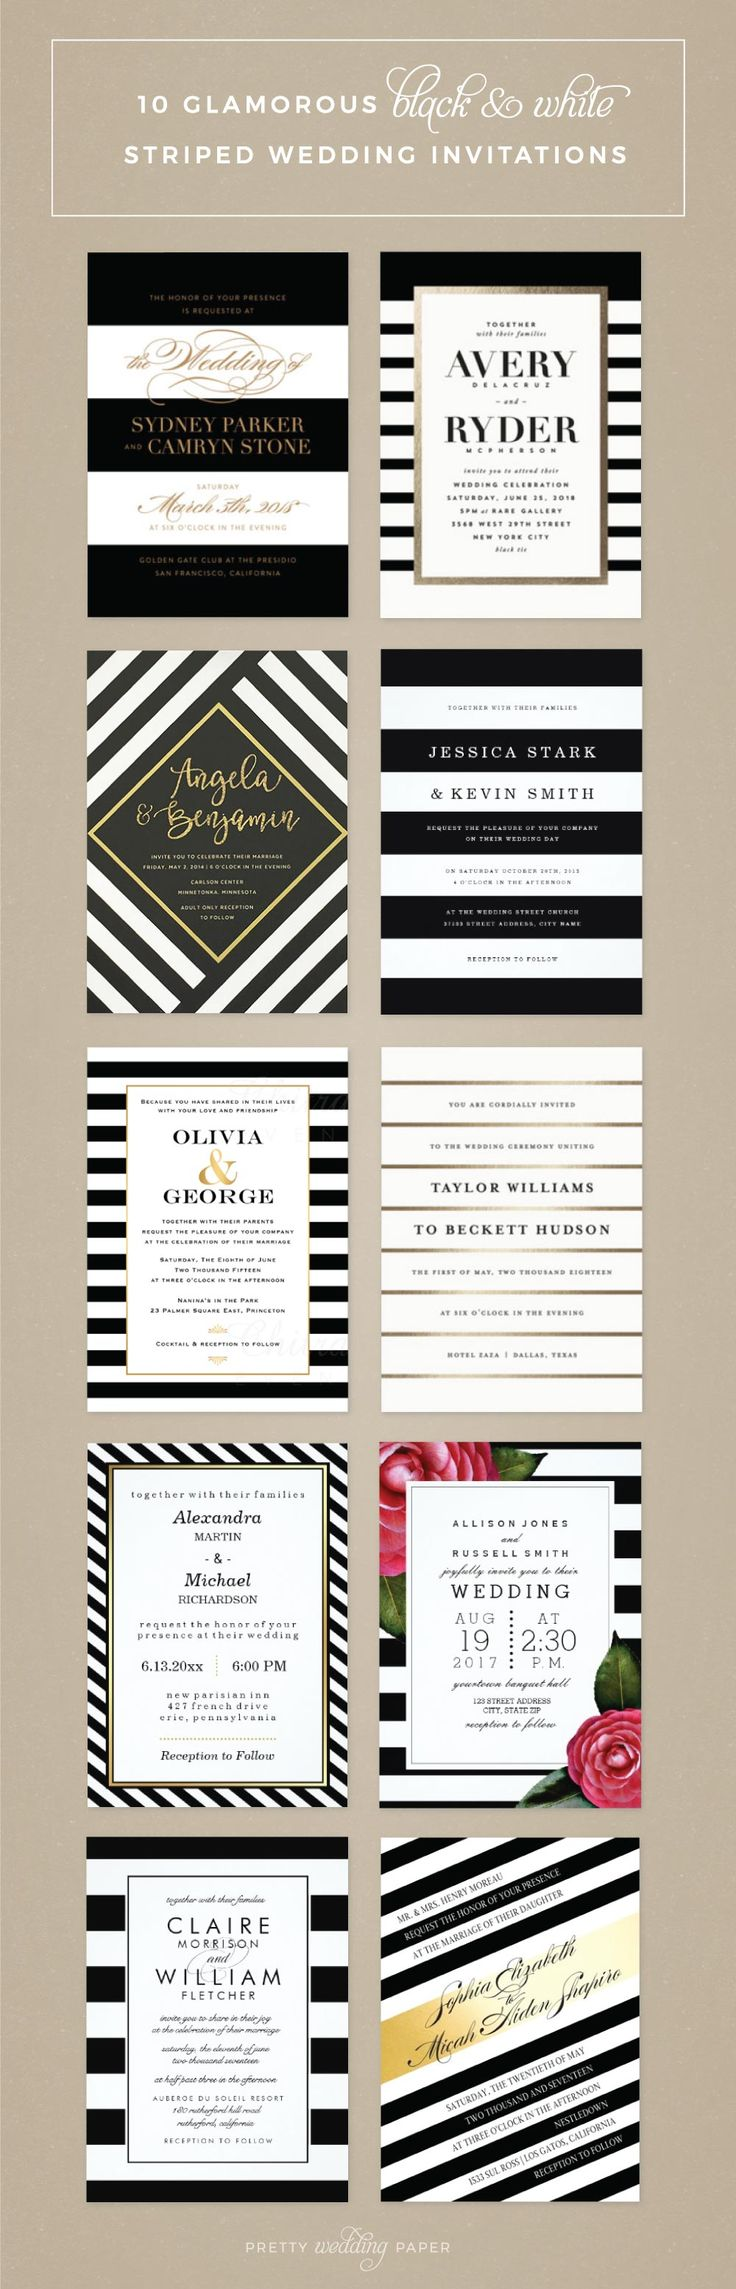 19 Best Calligraphy Images On Pinterest Striped Wedding Wedding